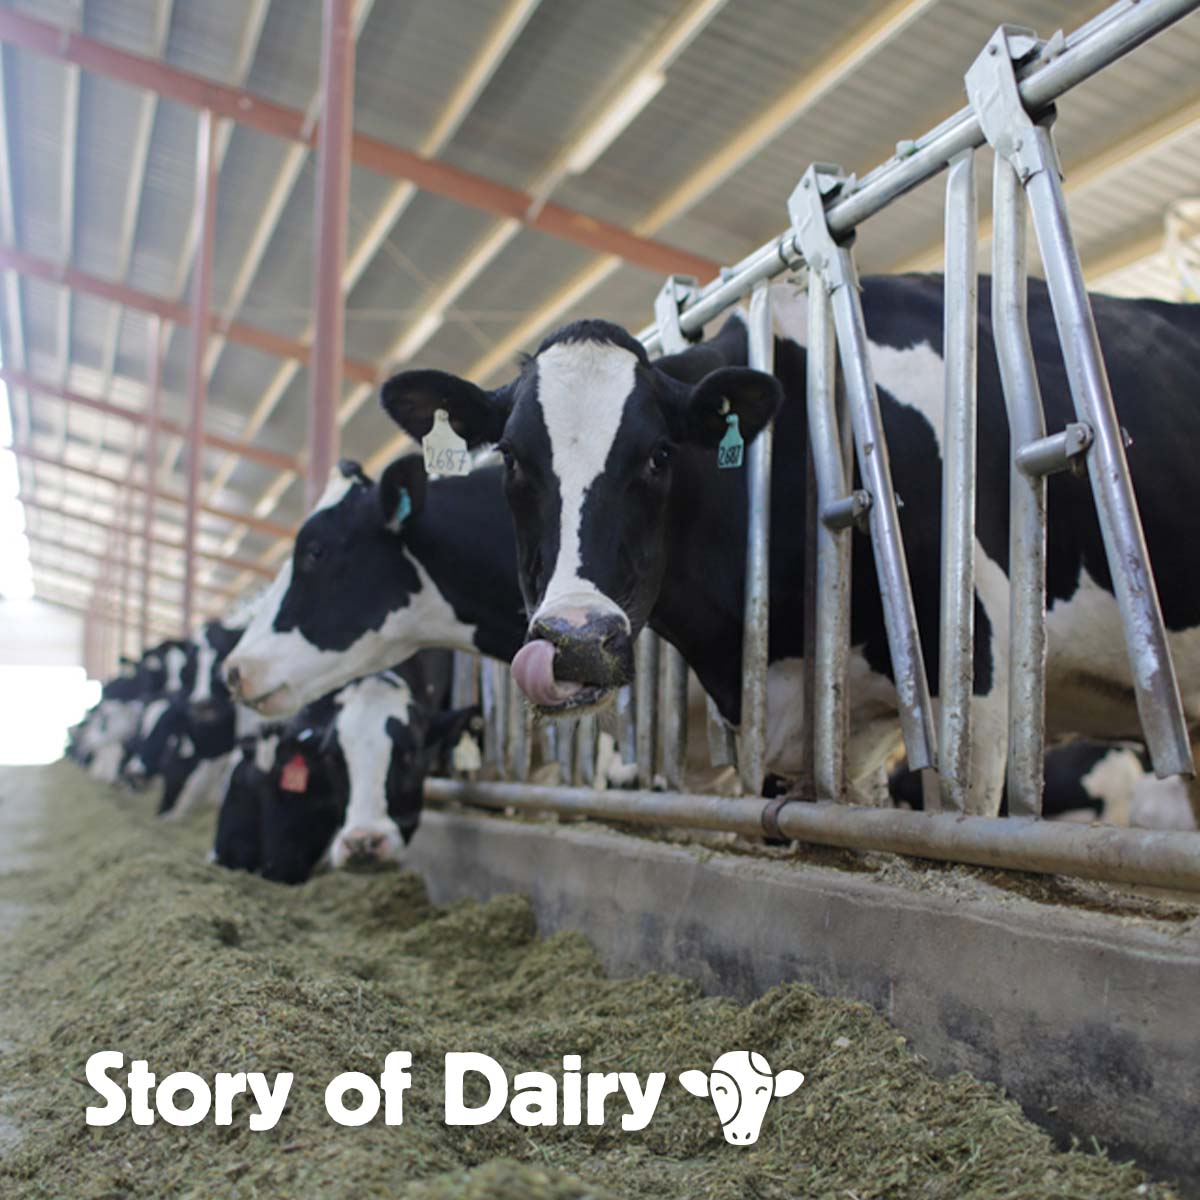 The Story of Dairy: Caring for Cows Who Make Your Milk